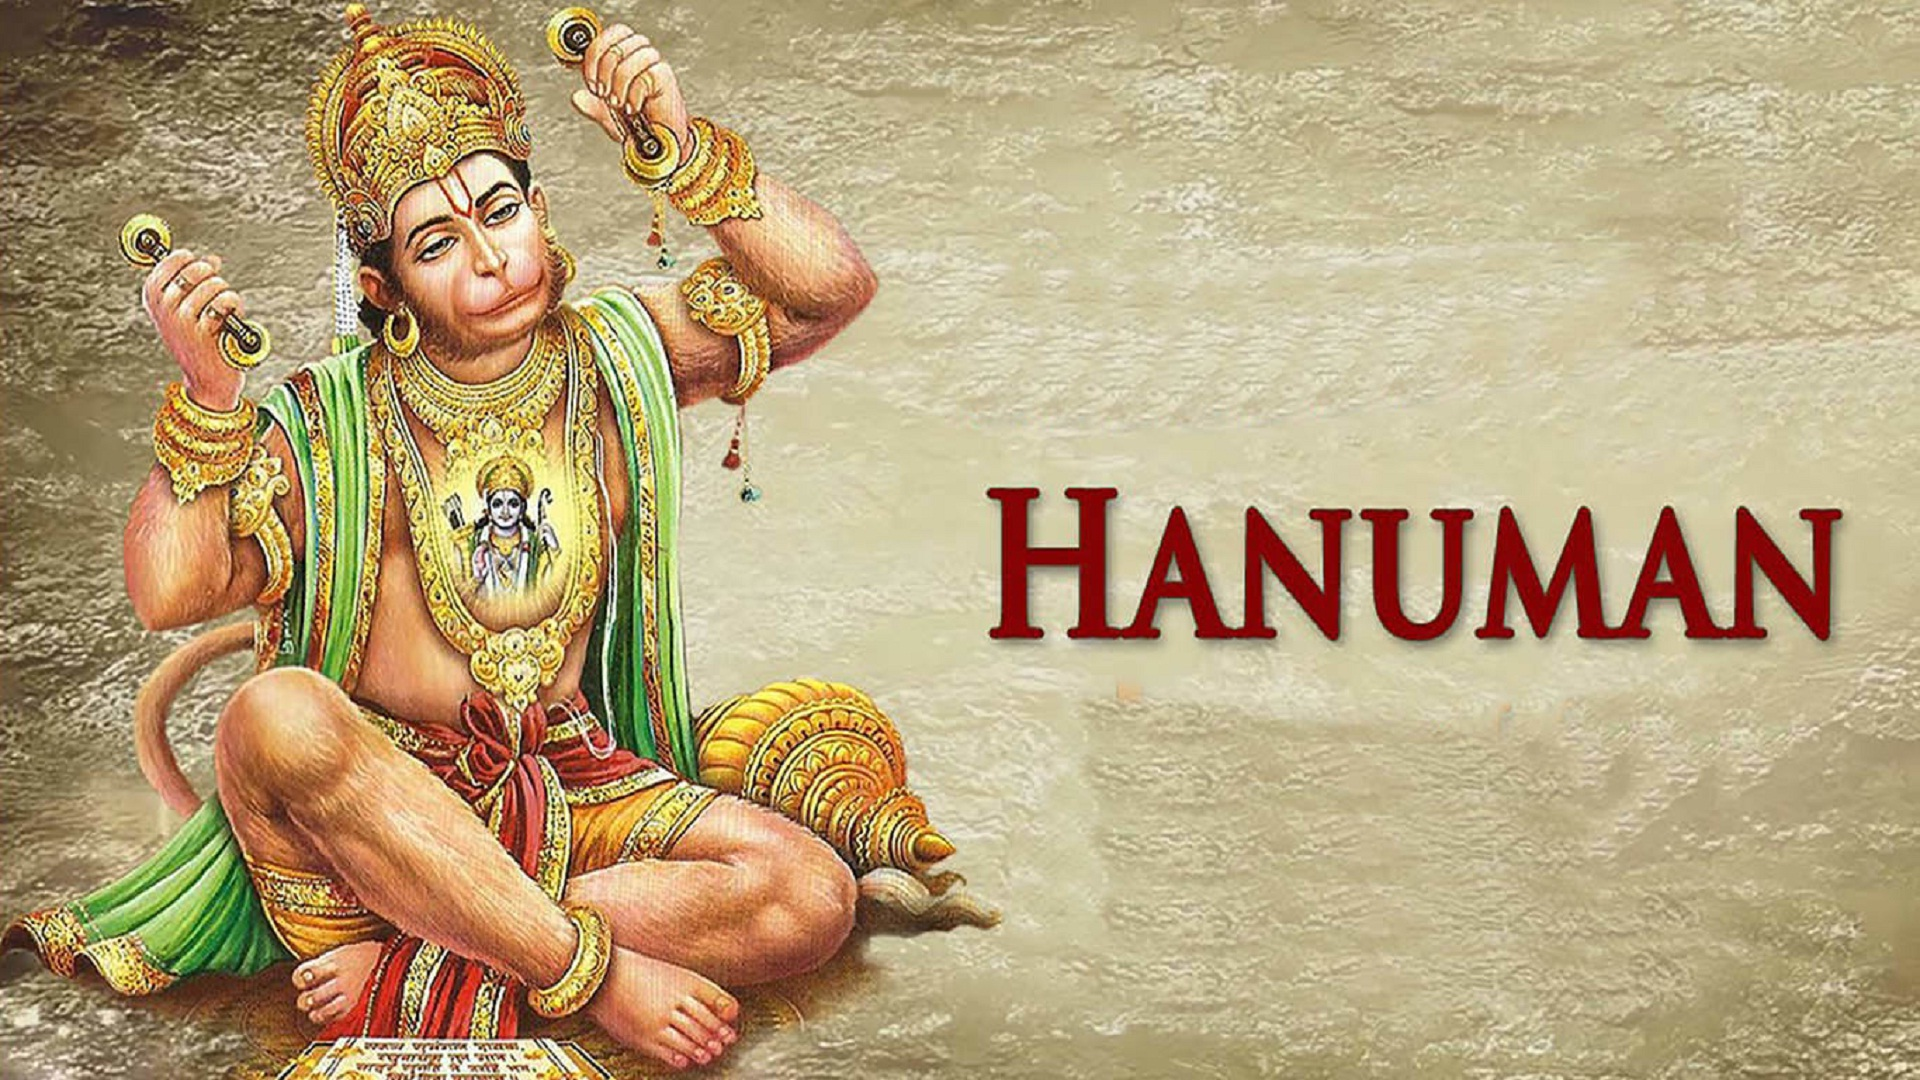 hanuman-full-hd-wide-wallpapers-and-images